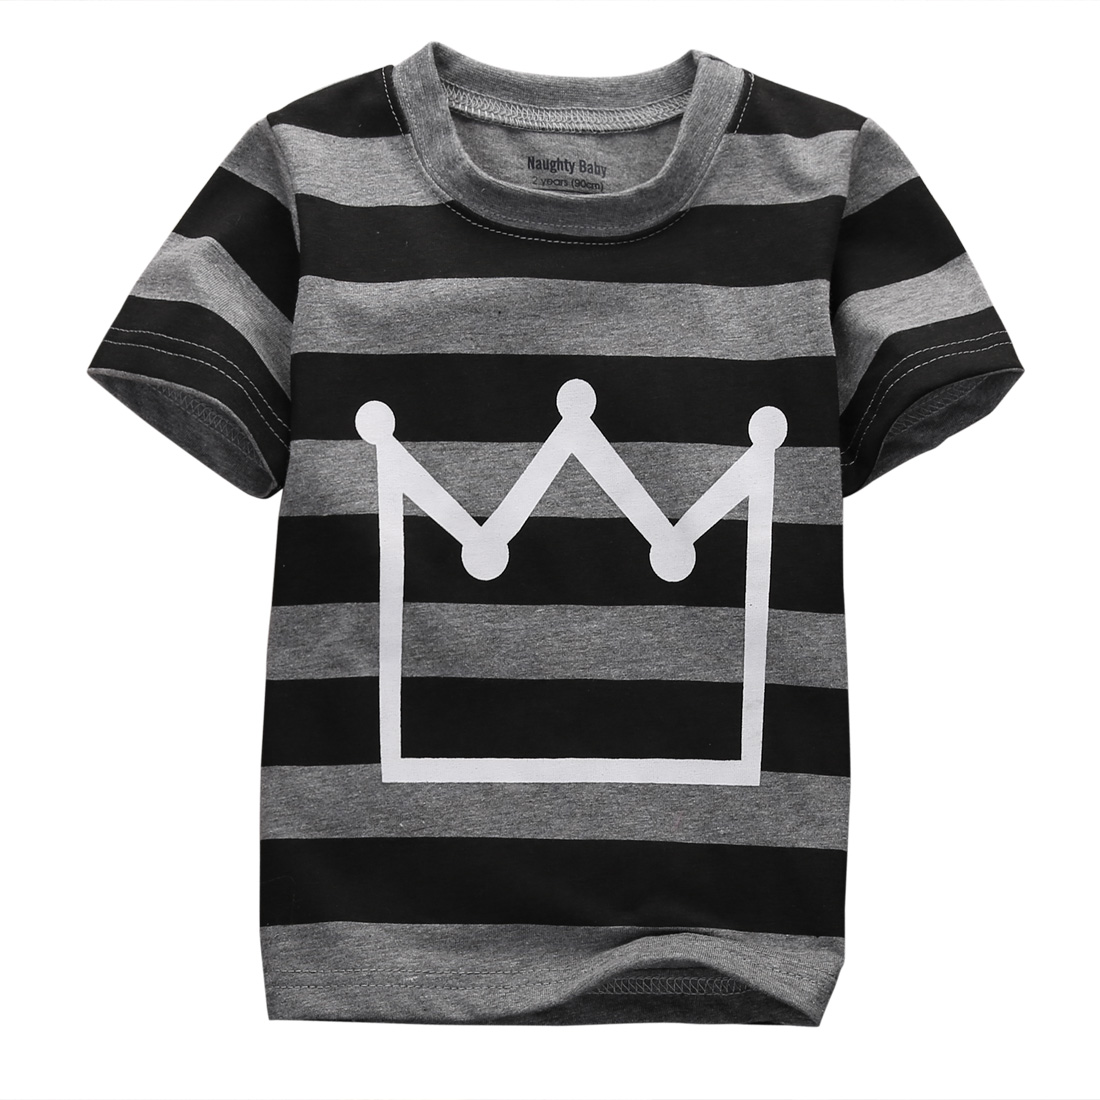 Fashion-Baby-Boys-Clothes-2016-New-Kids-Boy-Crown-Top-Shirt-Striped-T-Shirt-and-Pant-2pcs-Outfit-Children-Set-4